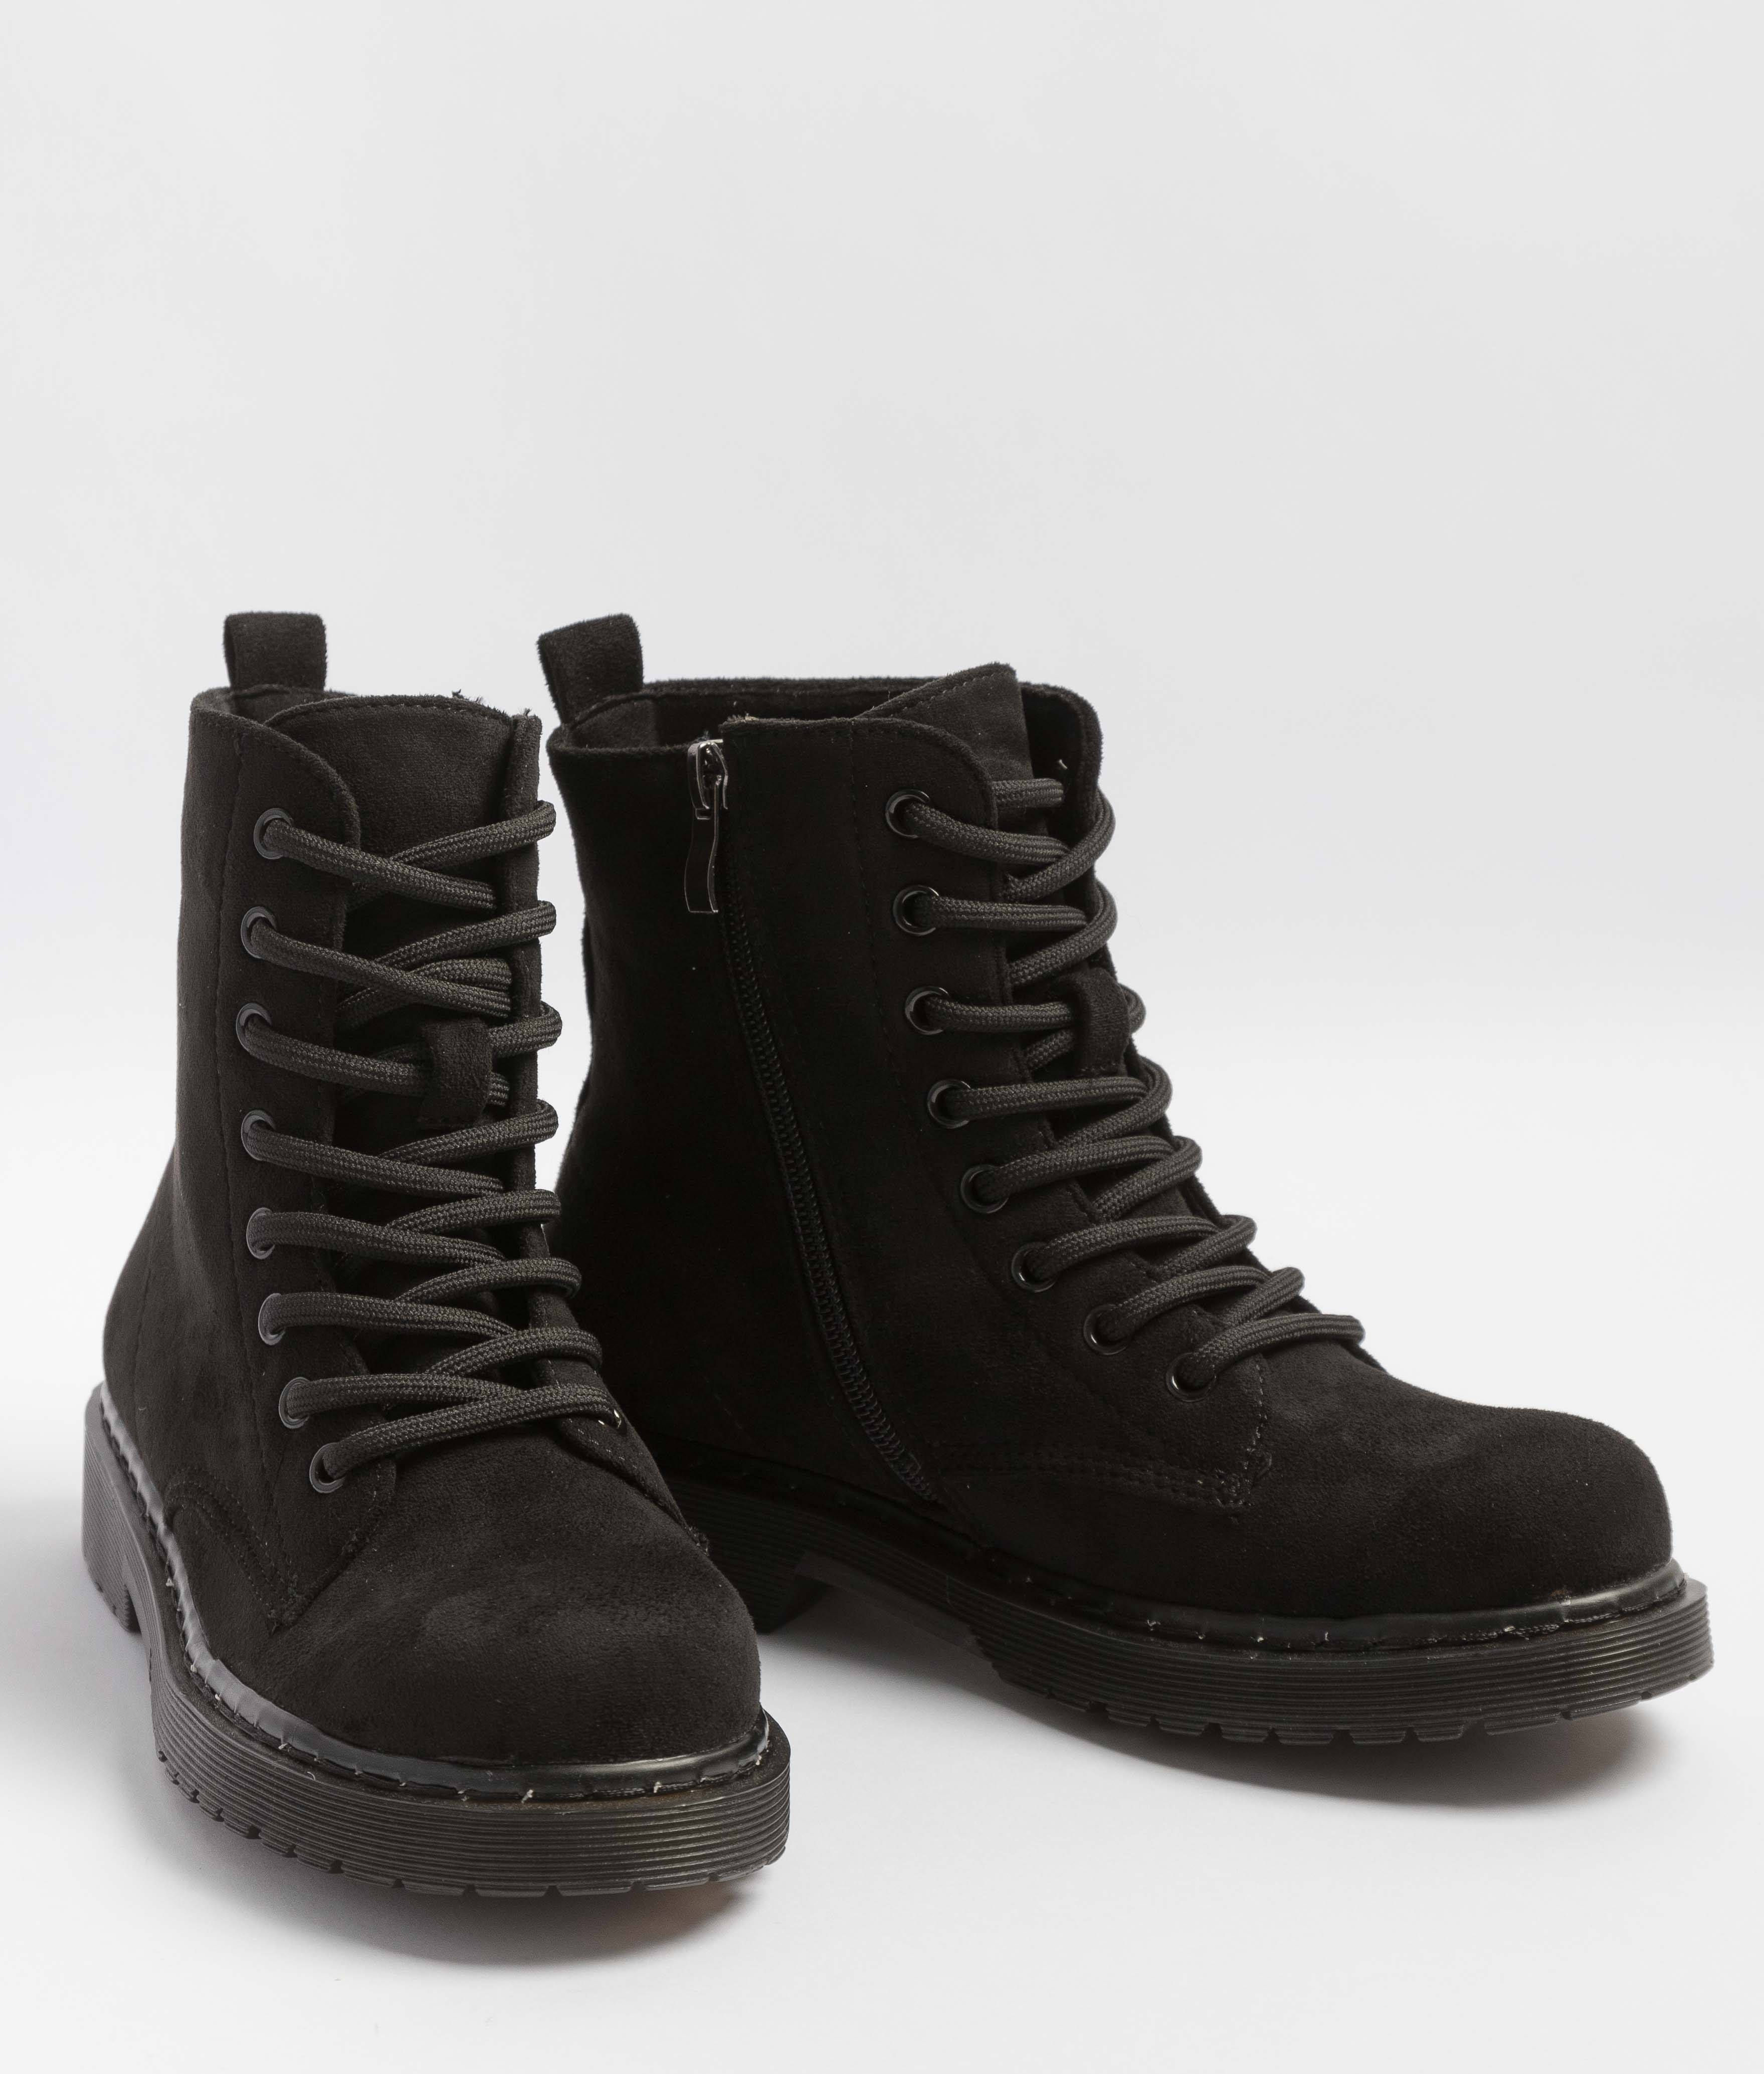 Low Boot Campa - Black